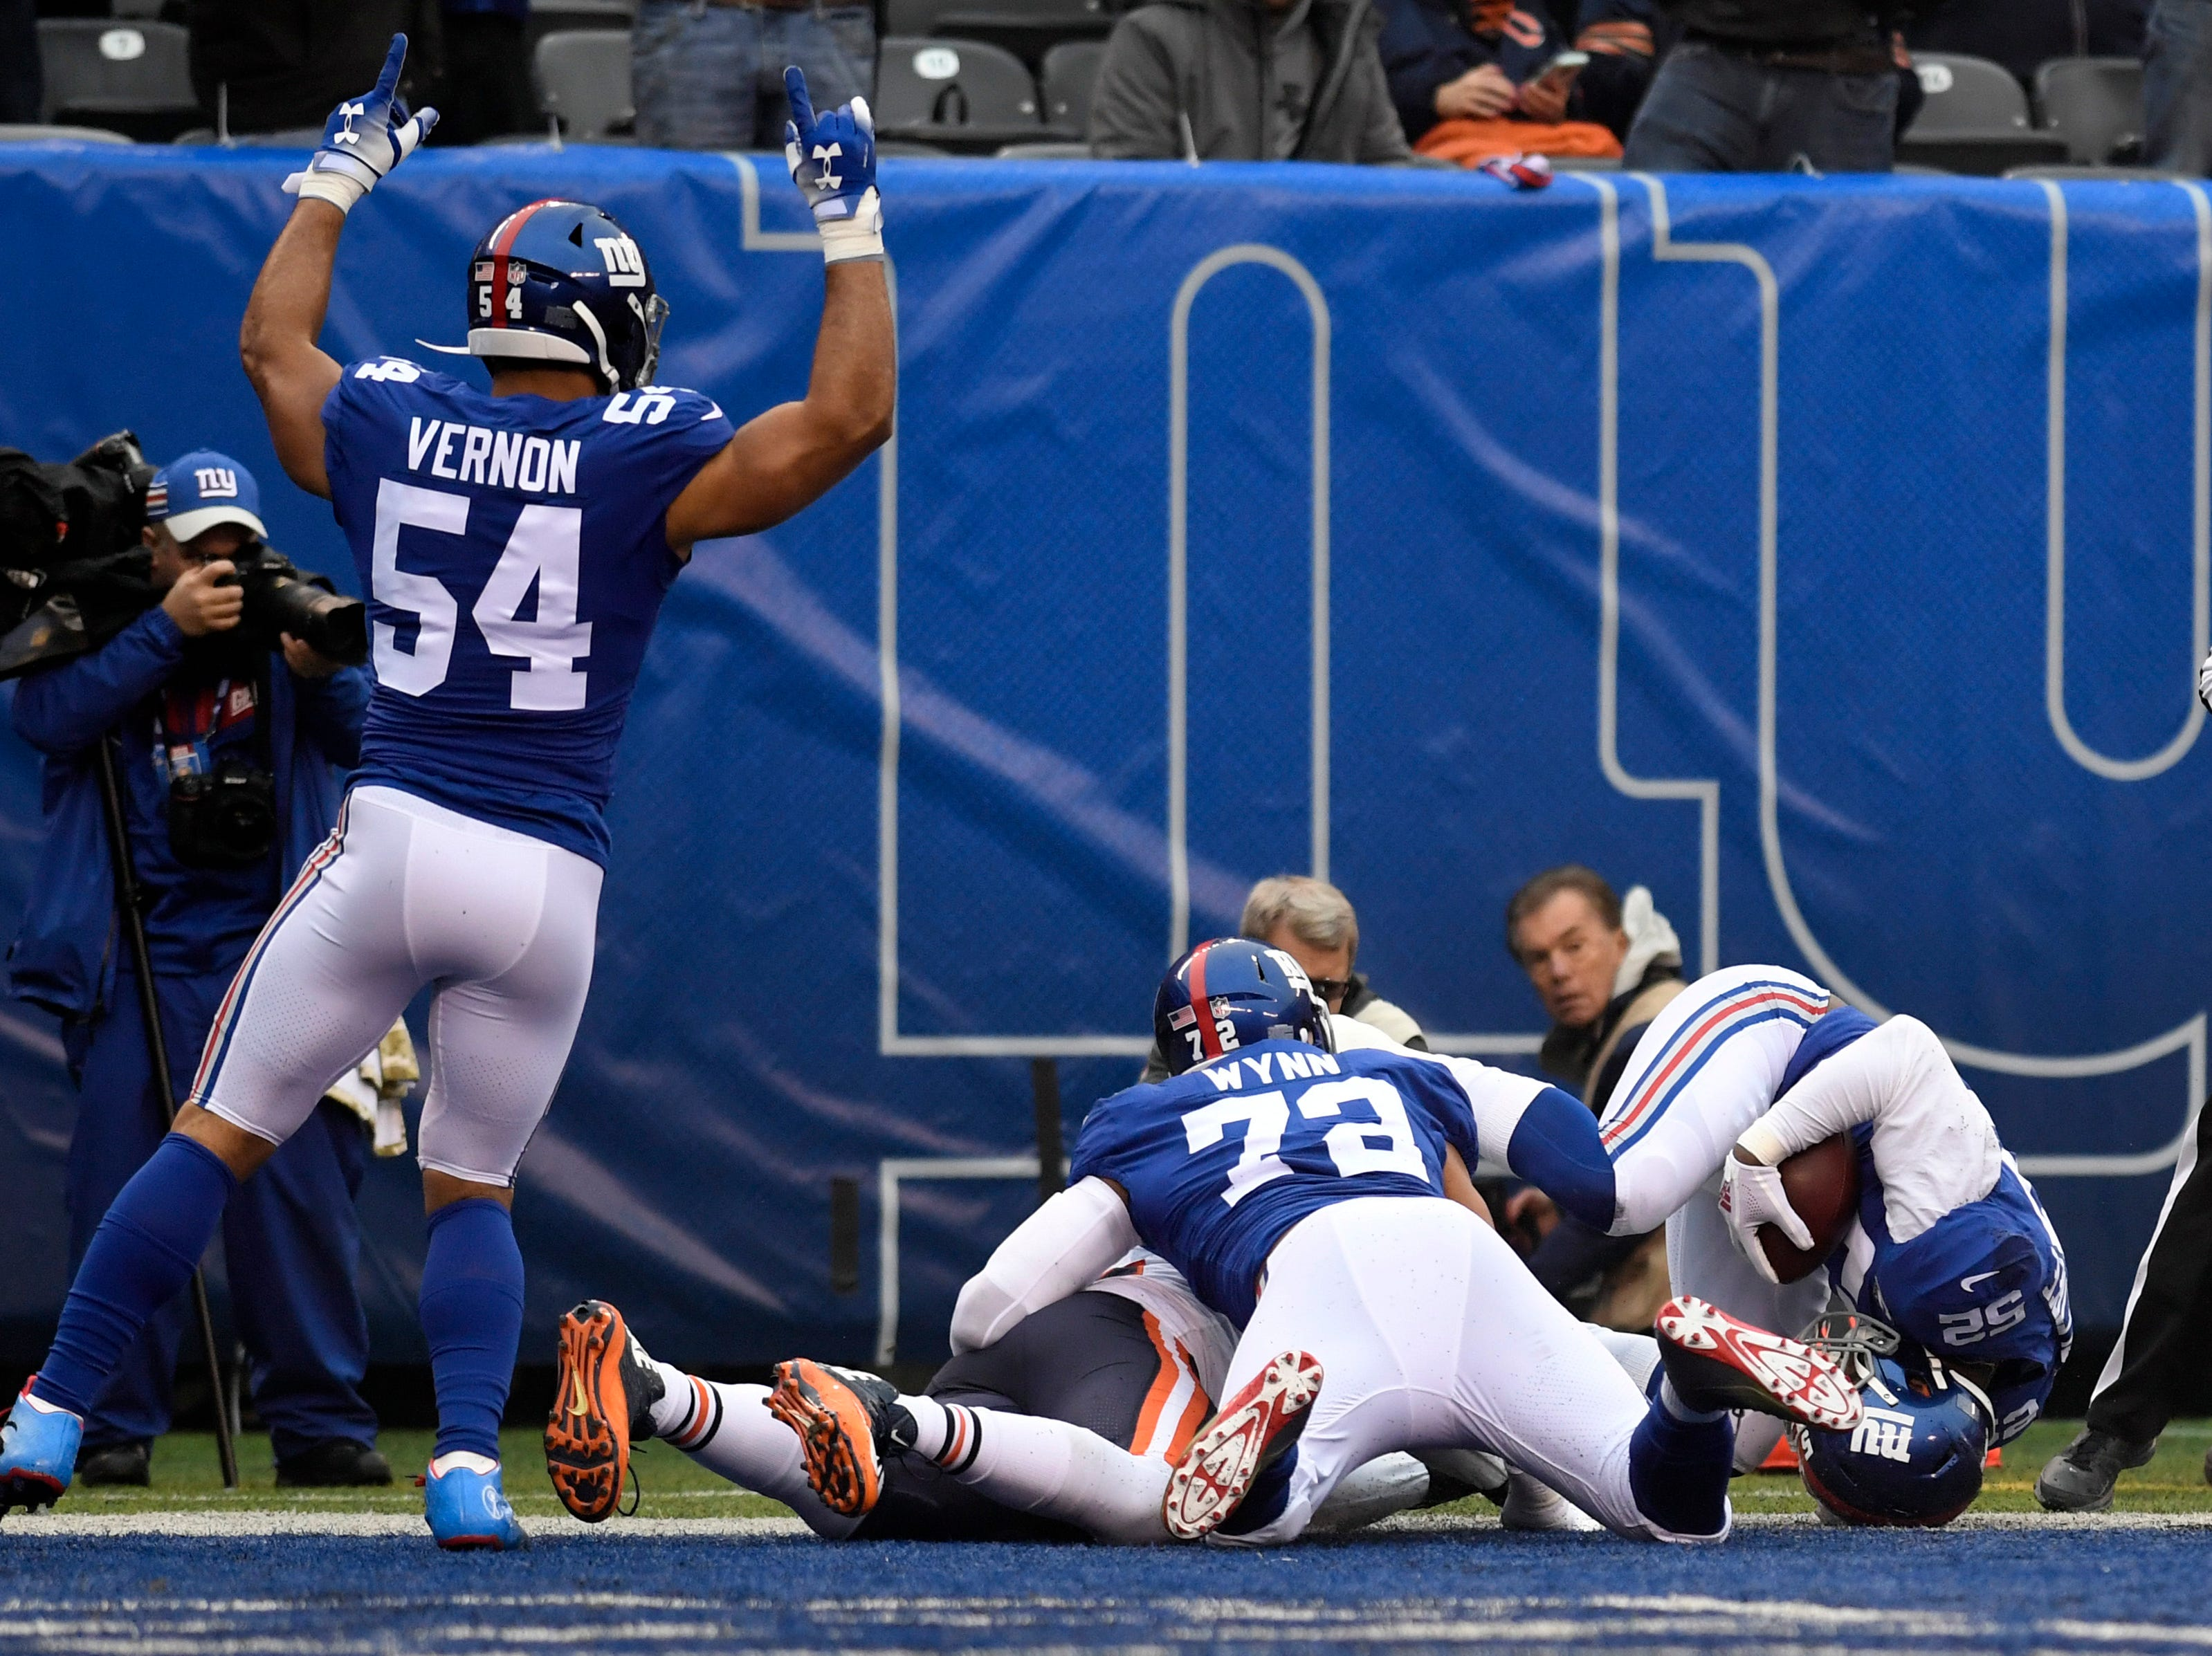 New York Giants linebacker Alec Ogletree, far right, rolls into the endzone for a touchdown after intercepting a Chicago Bears pass in the first quarter on Sunday, Dec. 2, 2018, in East Rutherford.